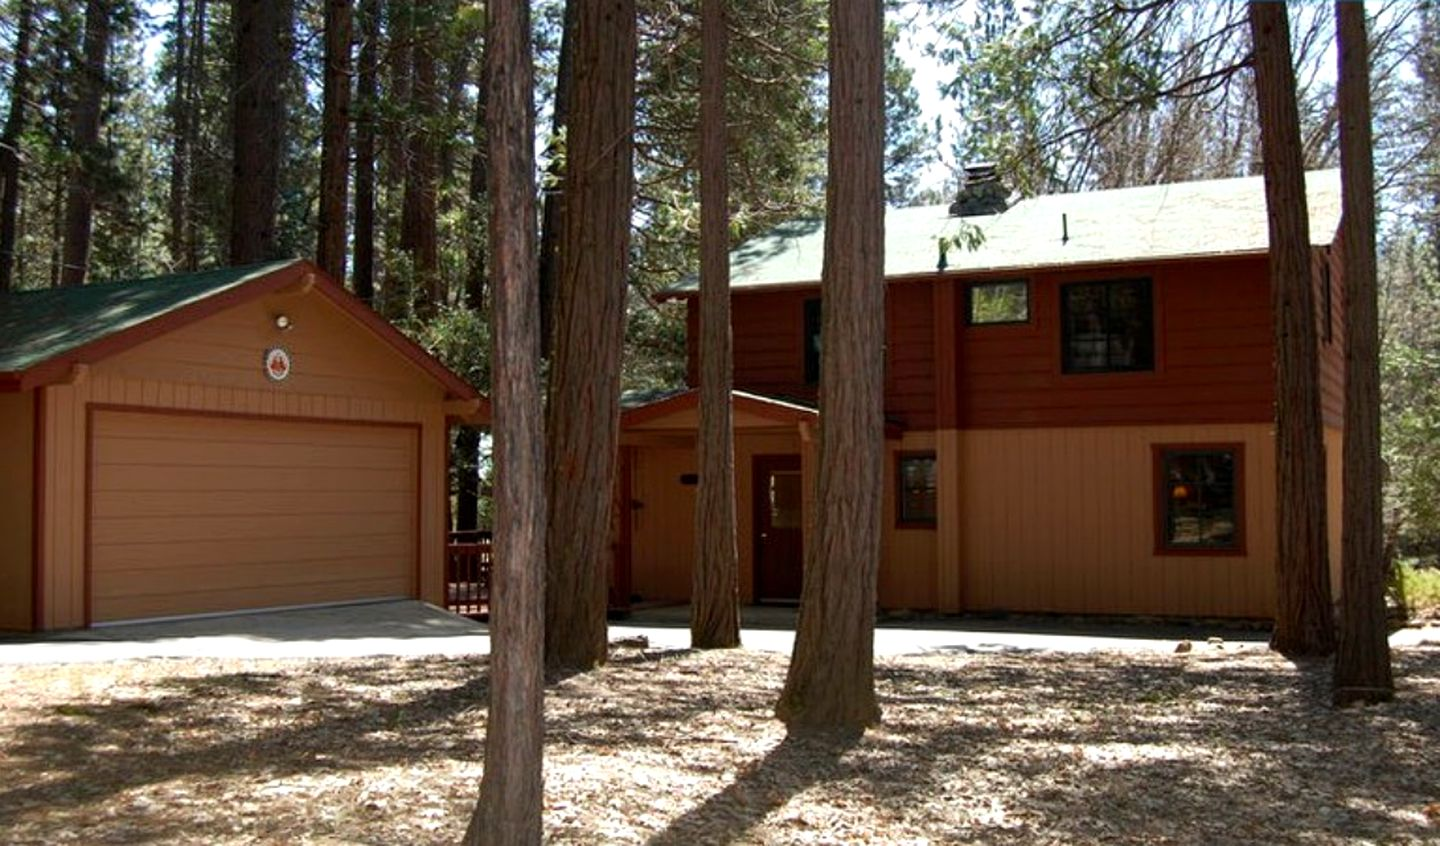 Wawona cabin rentals in Yosemite National Park